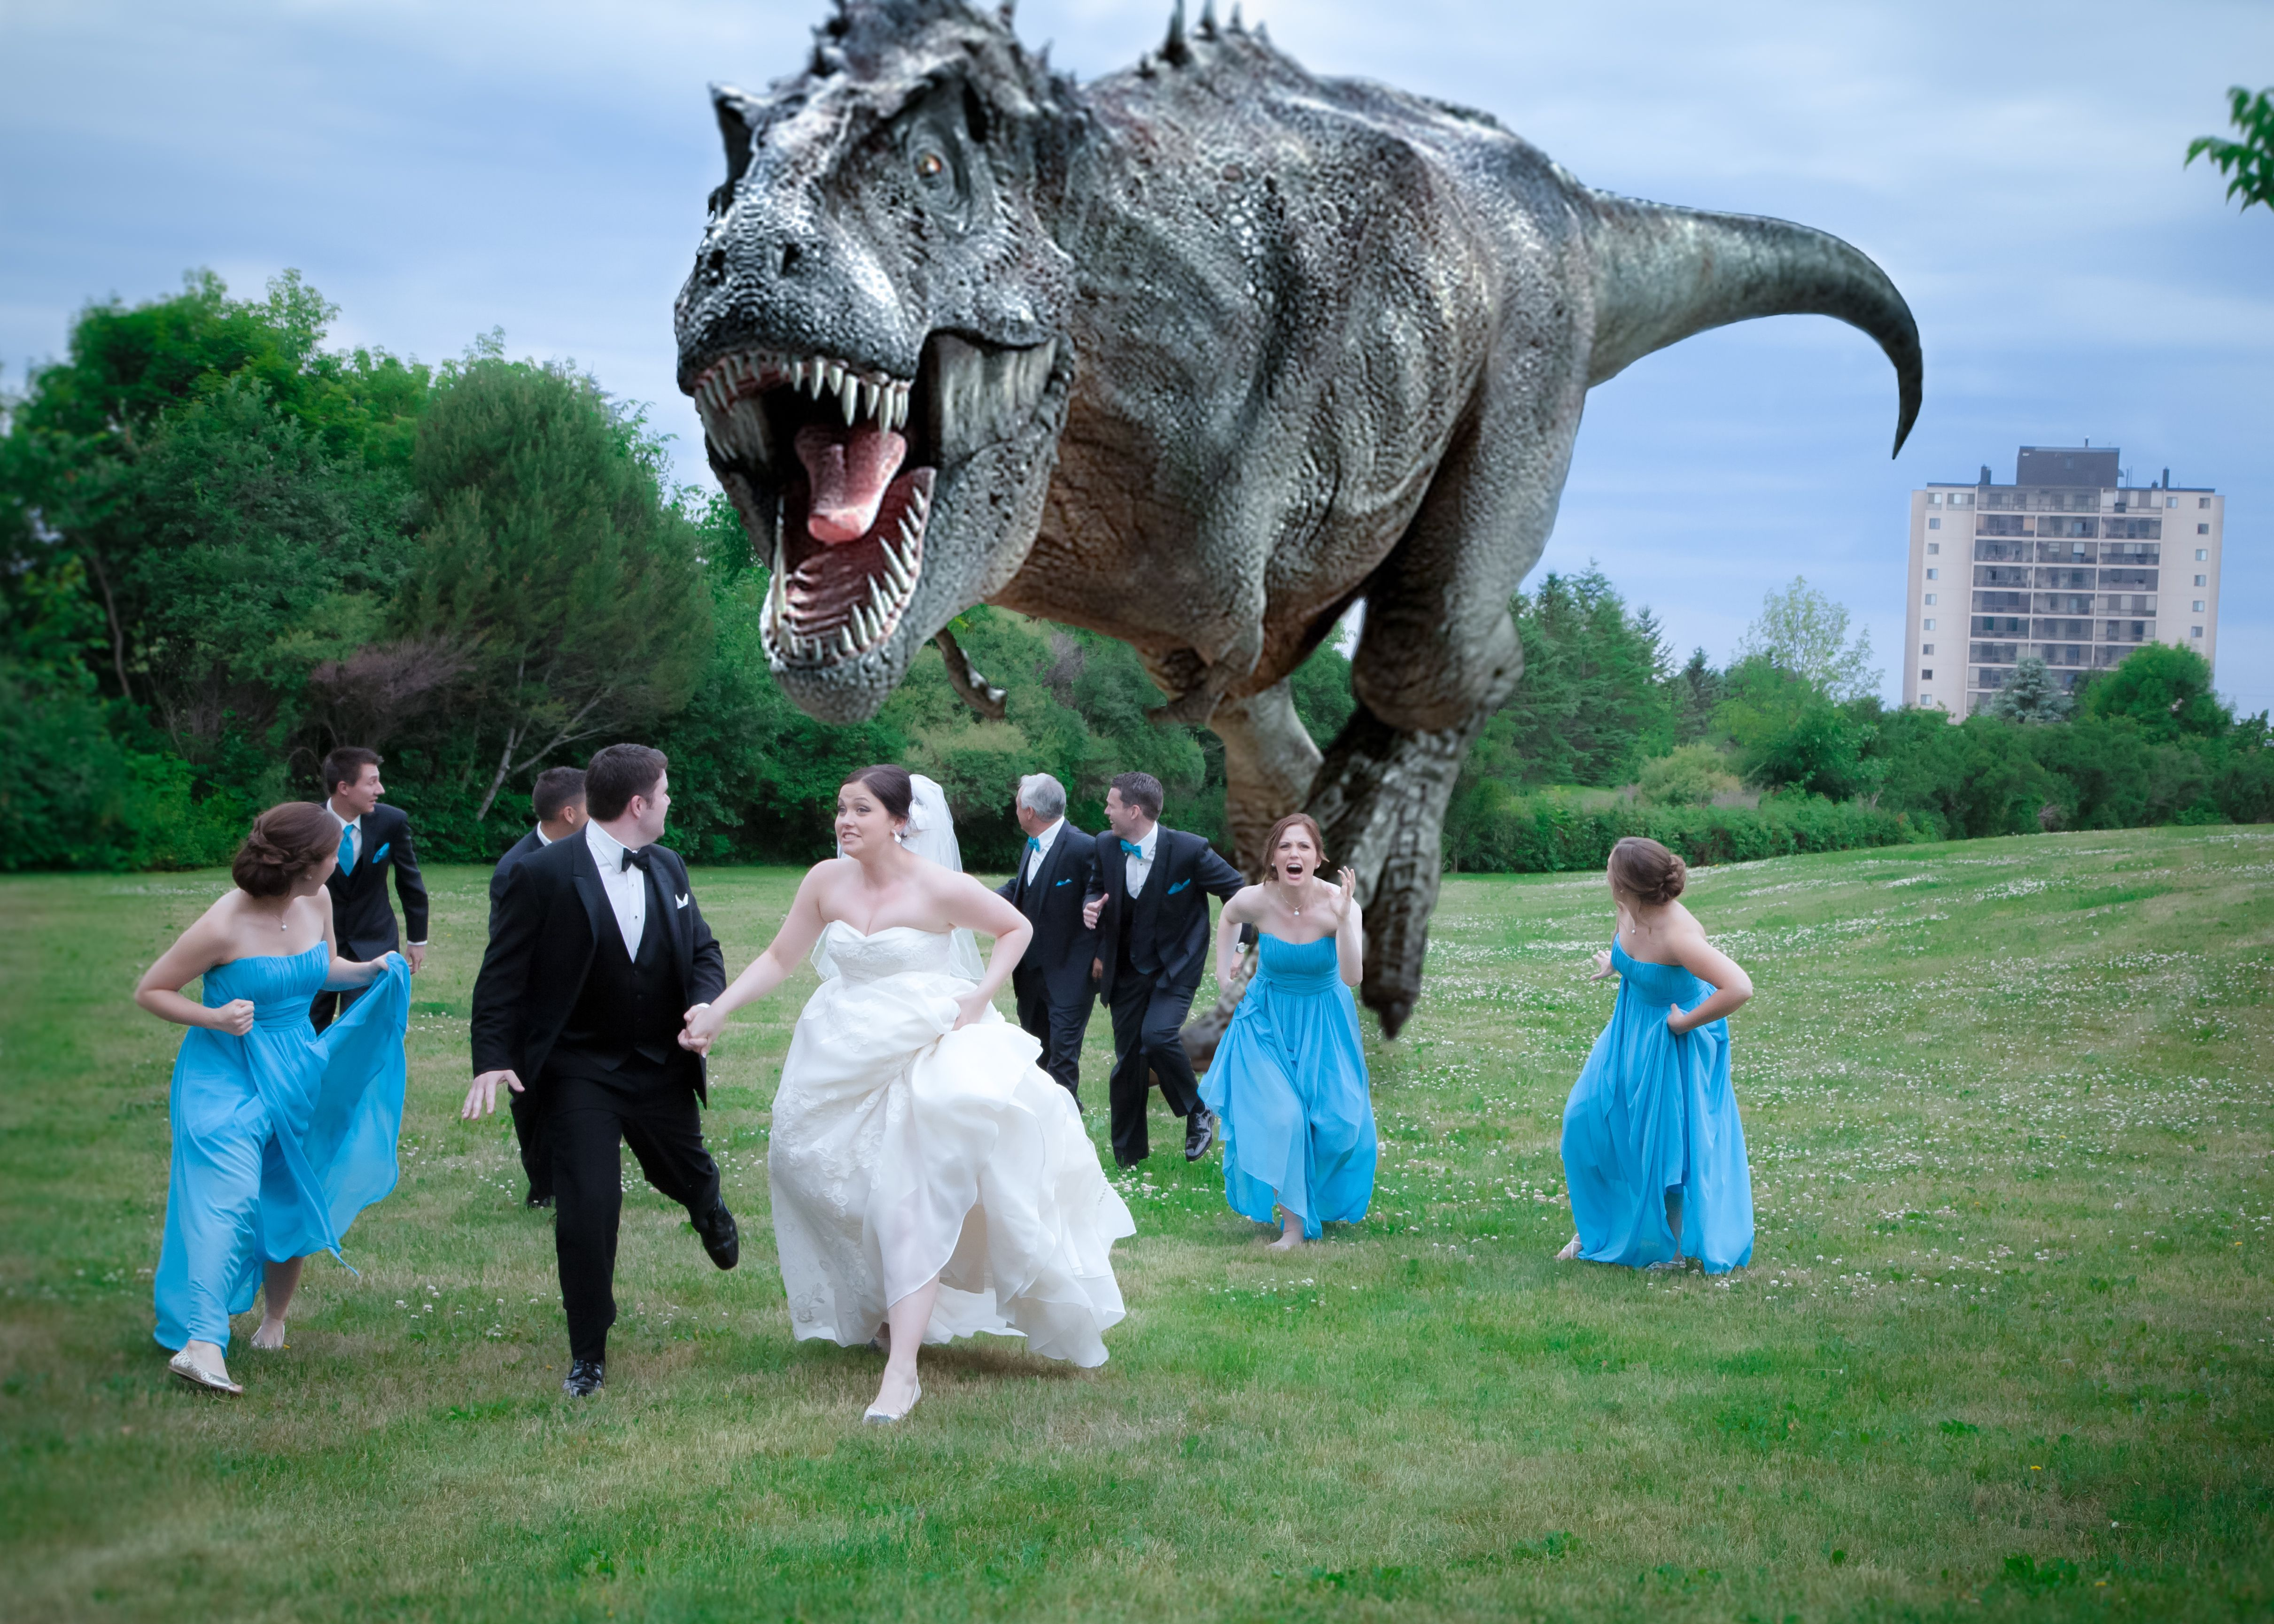 Dino Attack The Couple Thought It Would Be Fun To Have A Dinosaur Chase Their Wedding Party Dinosaur Wedding Photography Dinosaur Photo